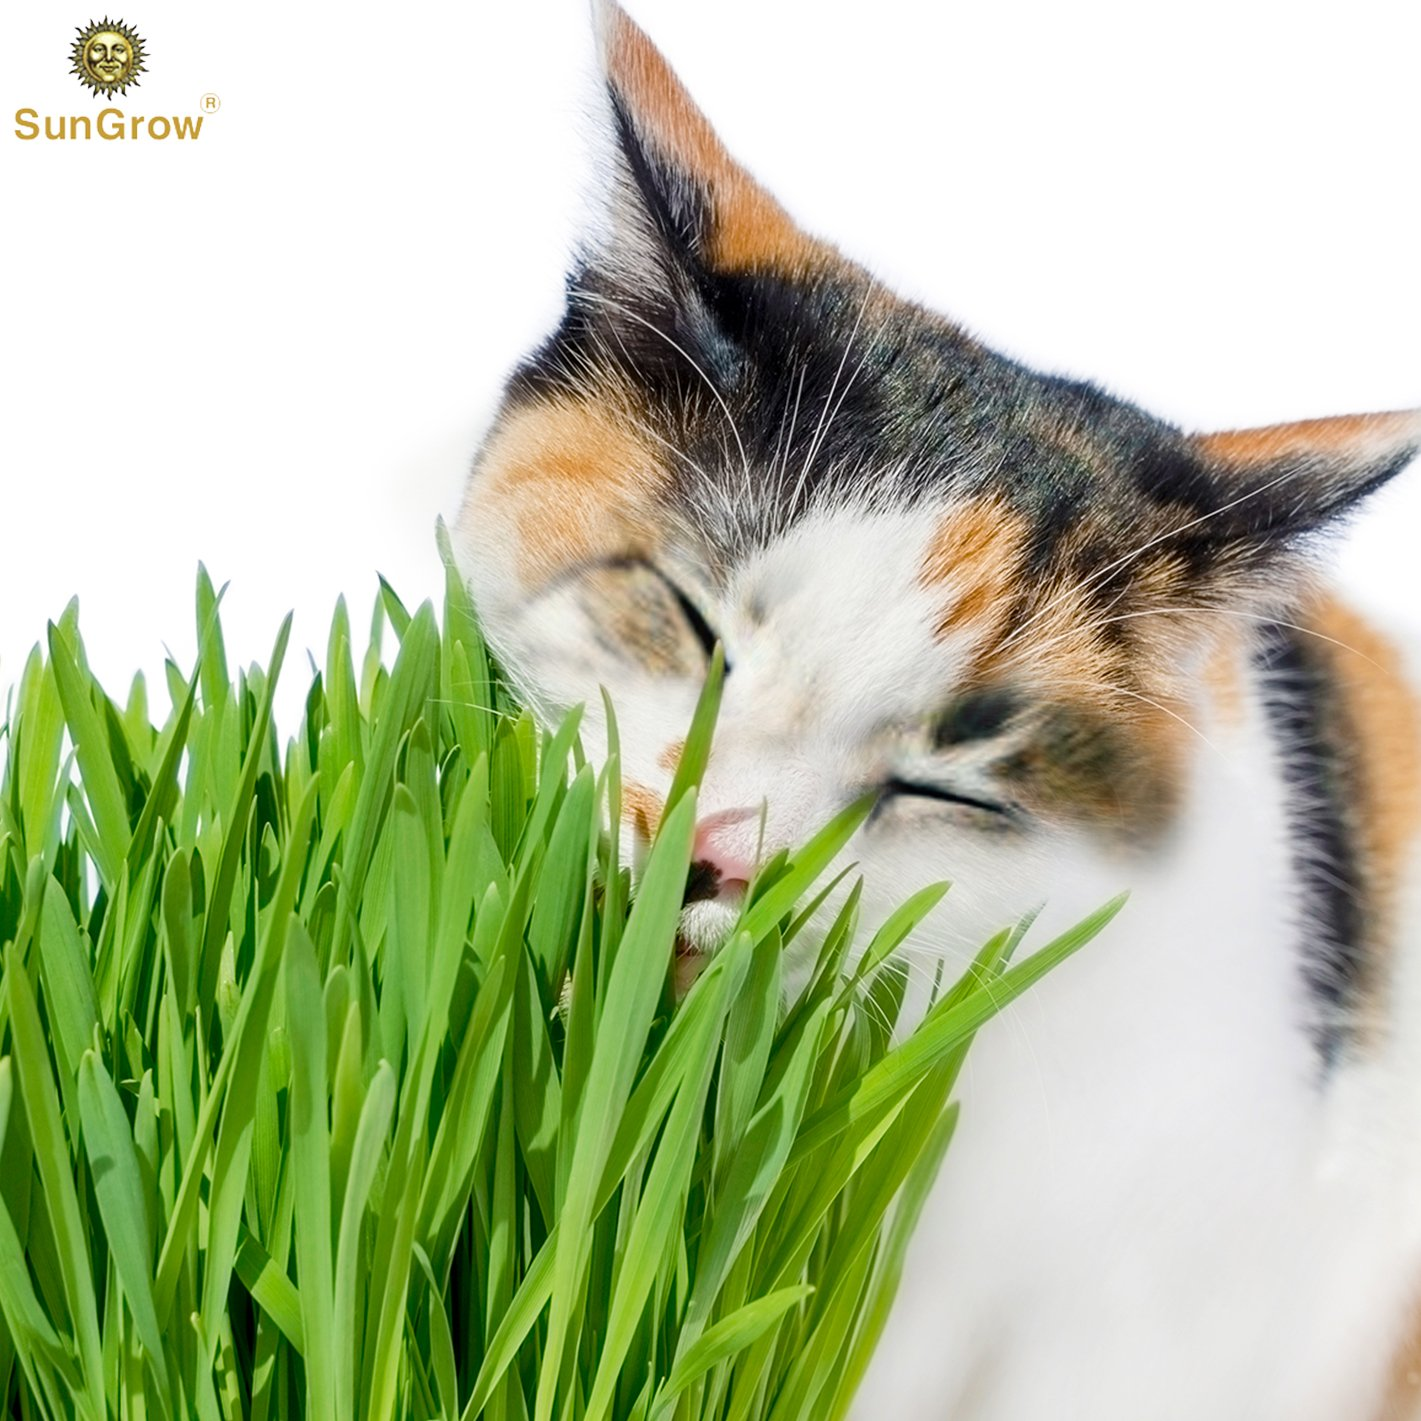 Wheatgrass Seeds for Cats by SunGrow - Aids faster digestion - Prevents furballs - Rich in essential amino acids - Fast, Thick and Easy growth Petgrass - Organic Non GMO seeds - 100 seeds per pack